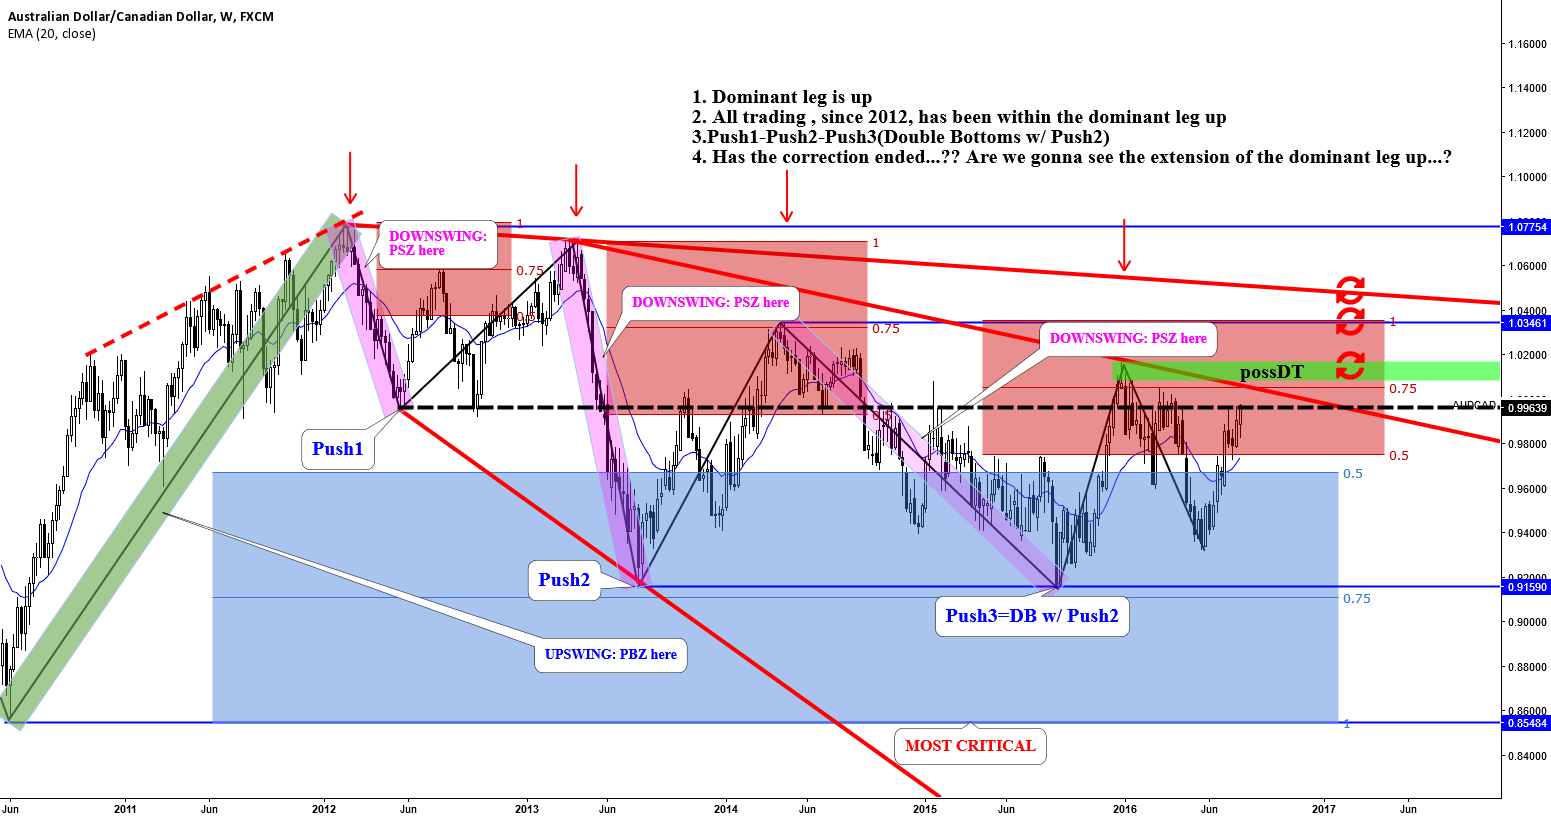 AUDCAD: HAS THE CORRECTION ENDED...?